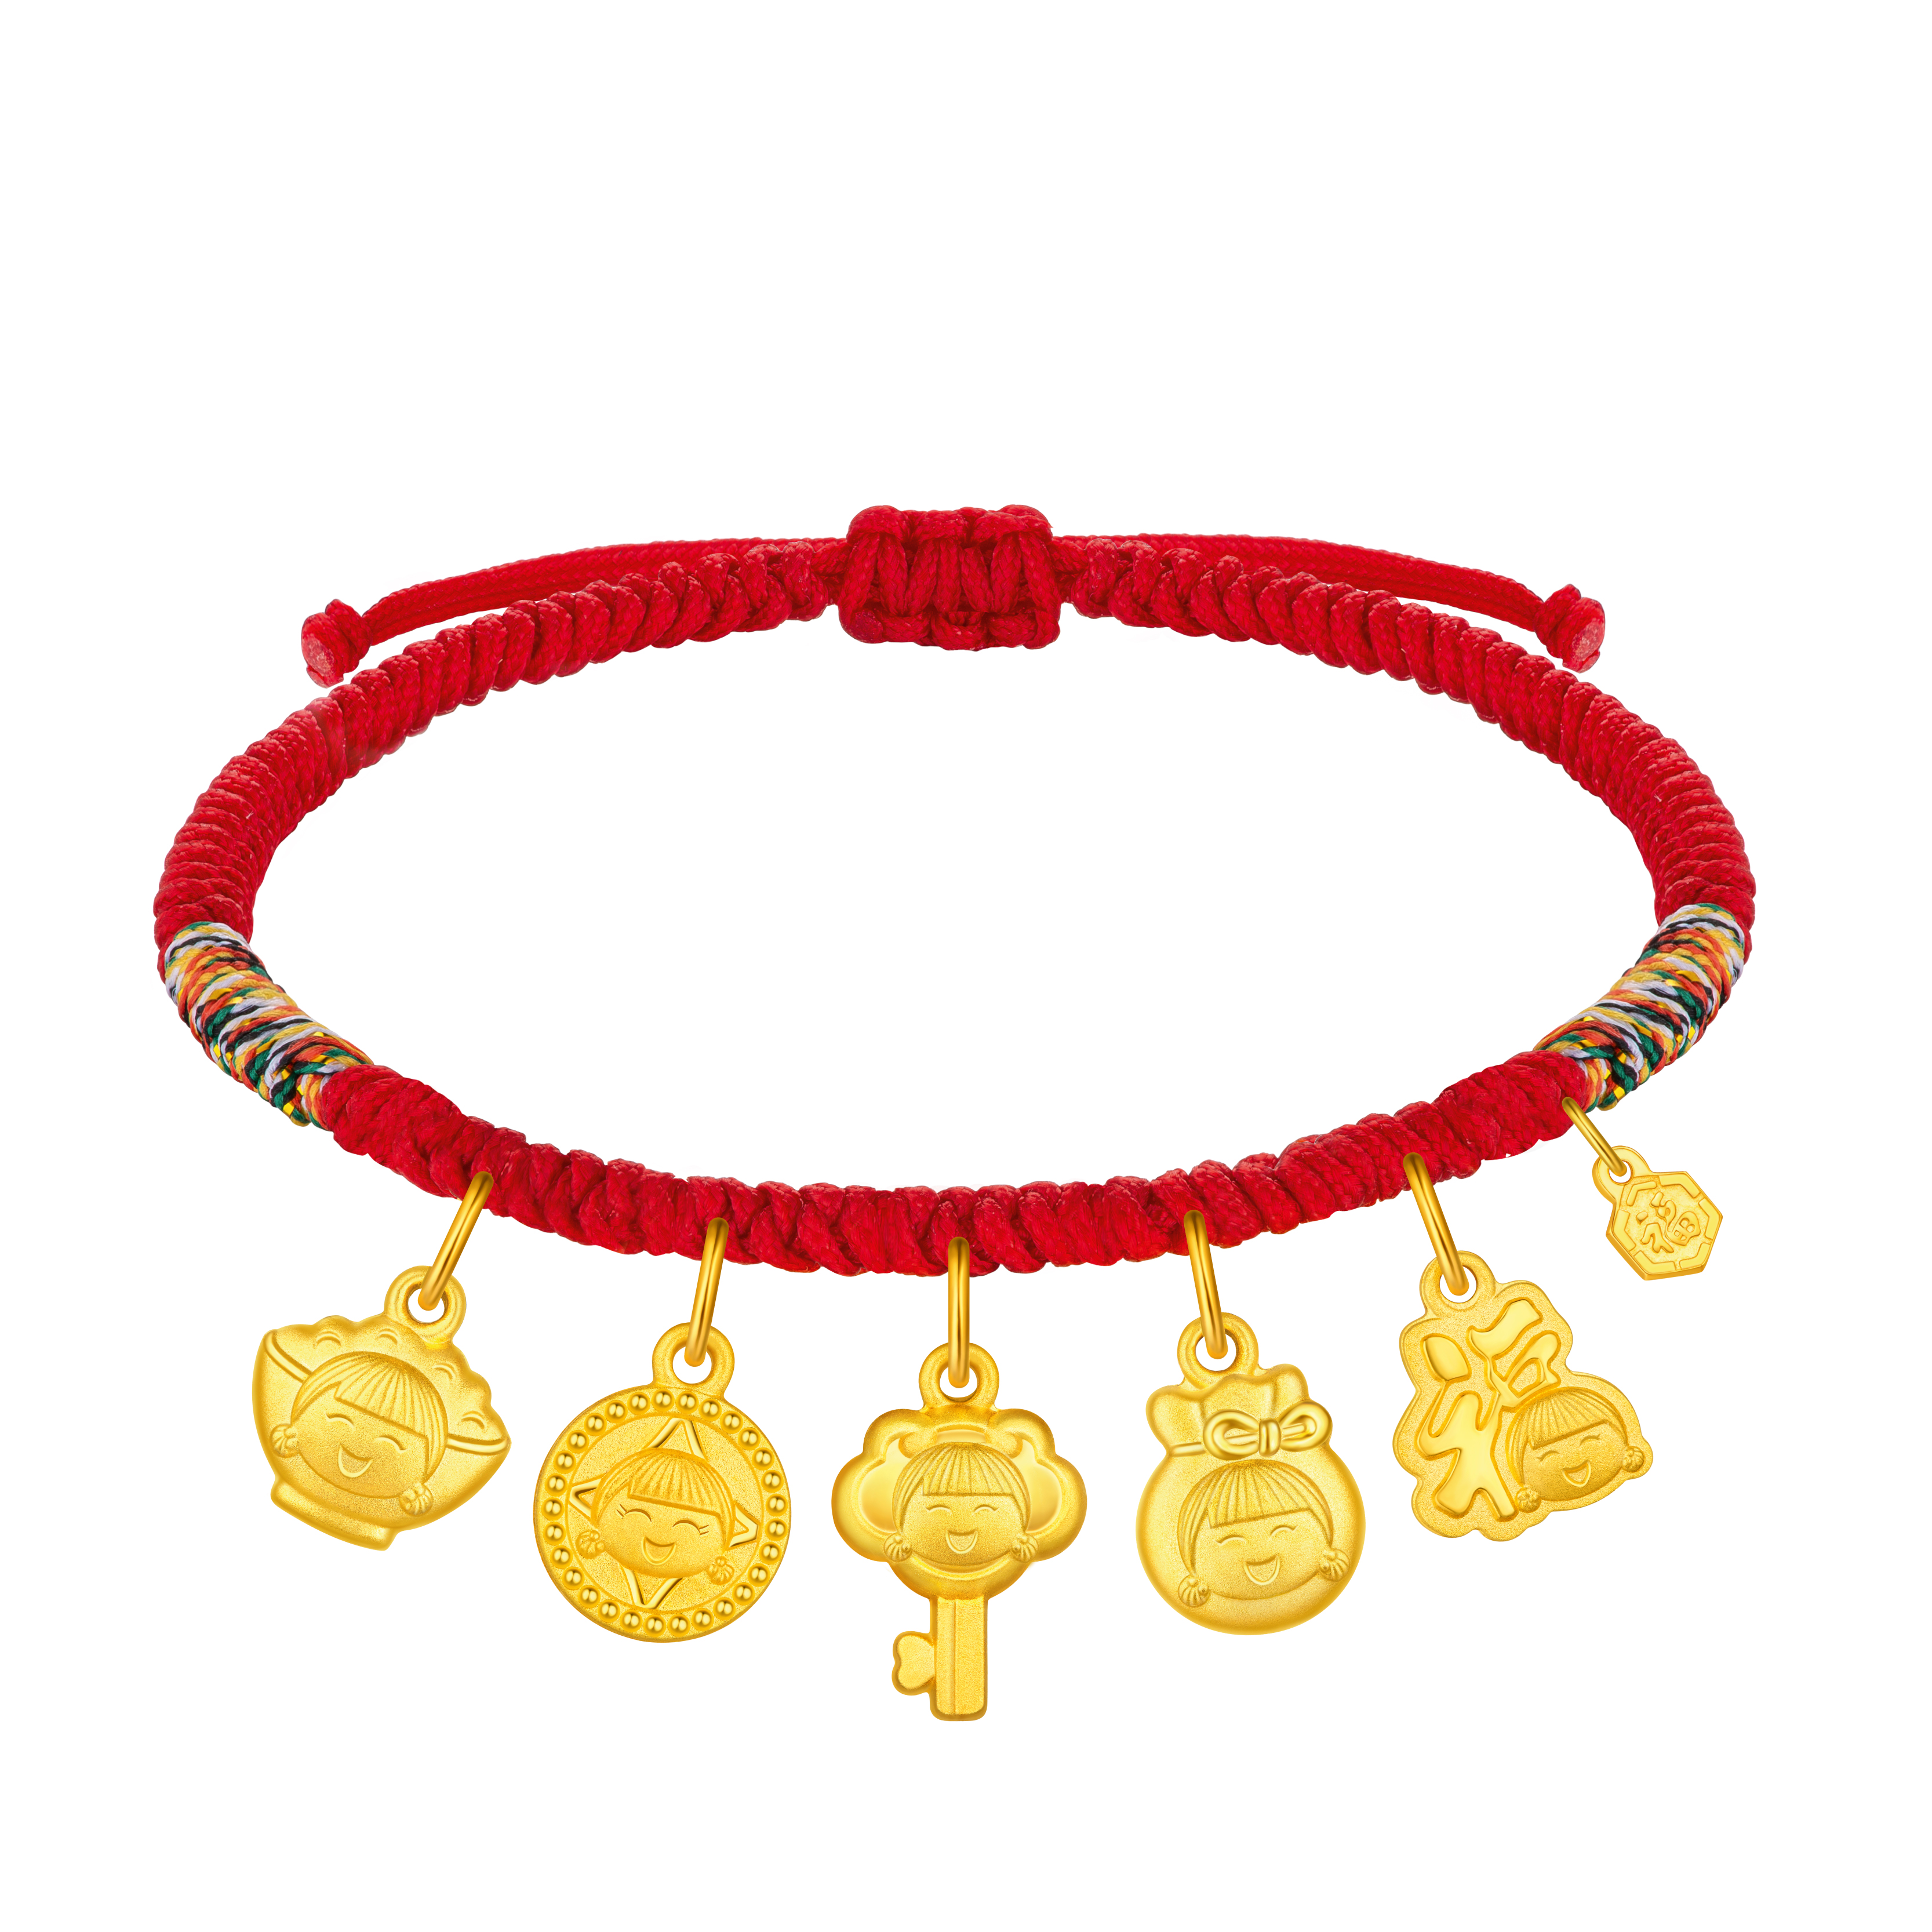 """Hugging Family Ting ting """"Auspicious Treasures"""" (Gold Bowl, Gold Coin, Gold Key, Gold Lucky Bag, Gold Fortune) Gold Cord Bracelet"""